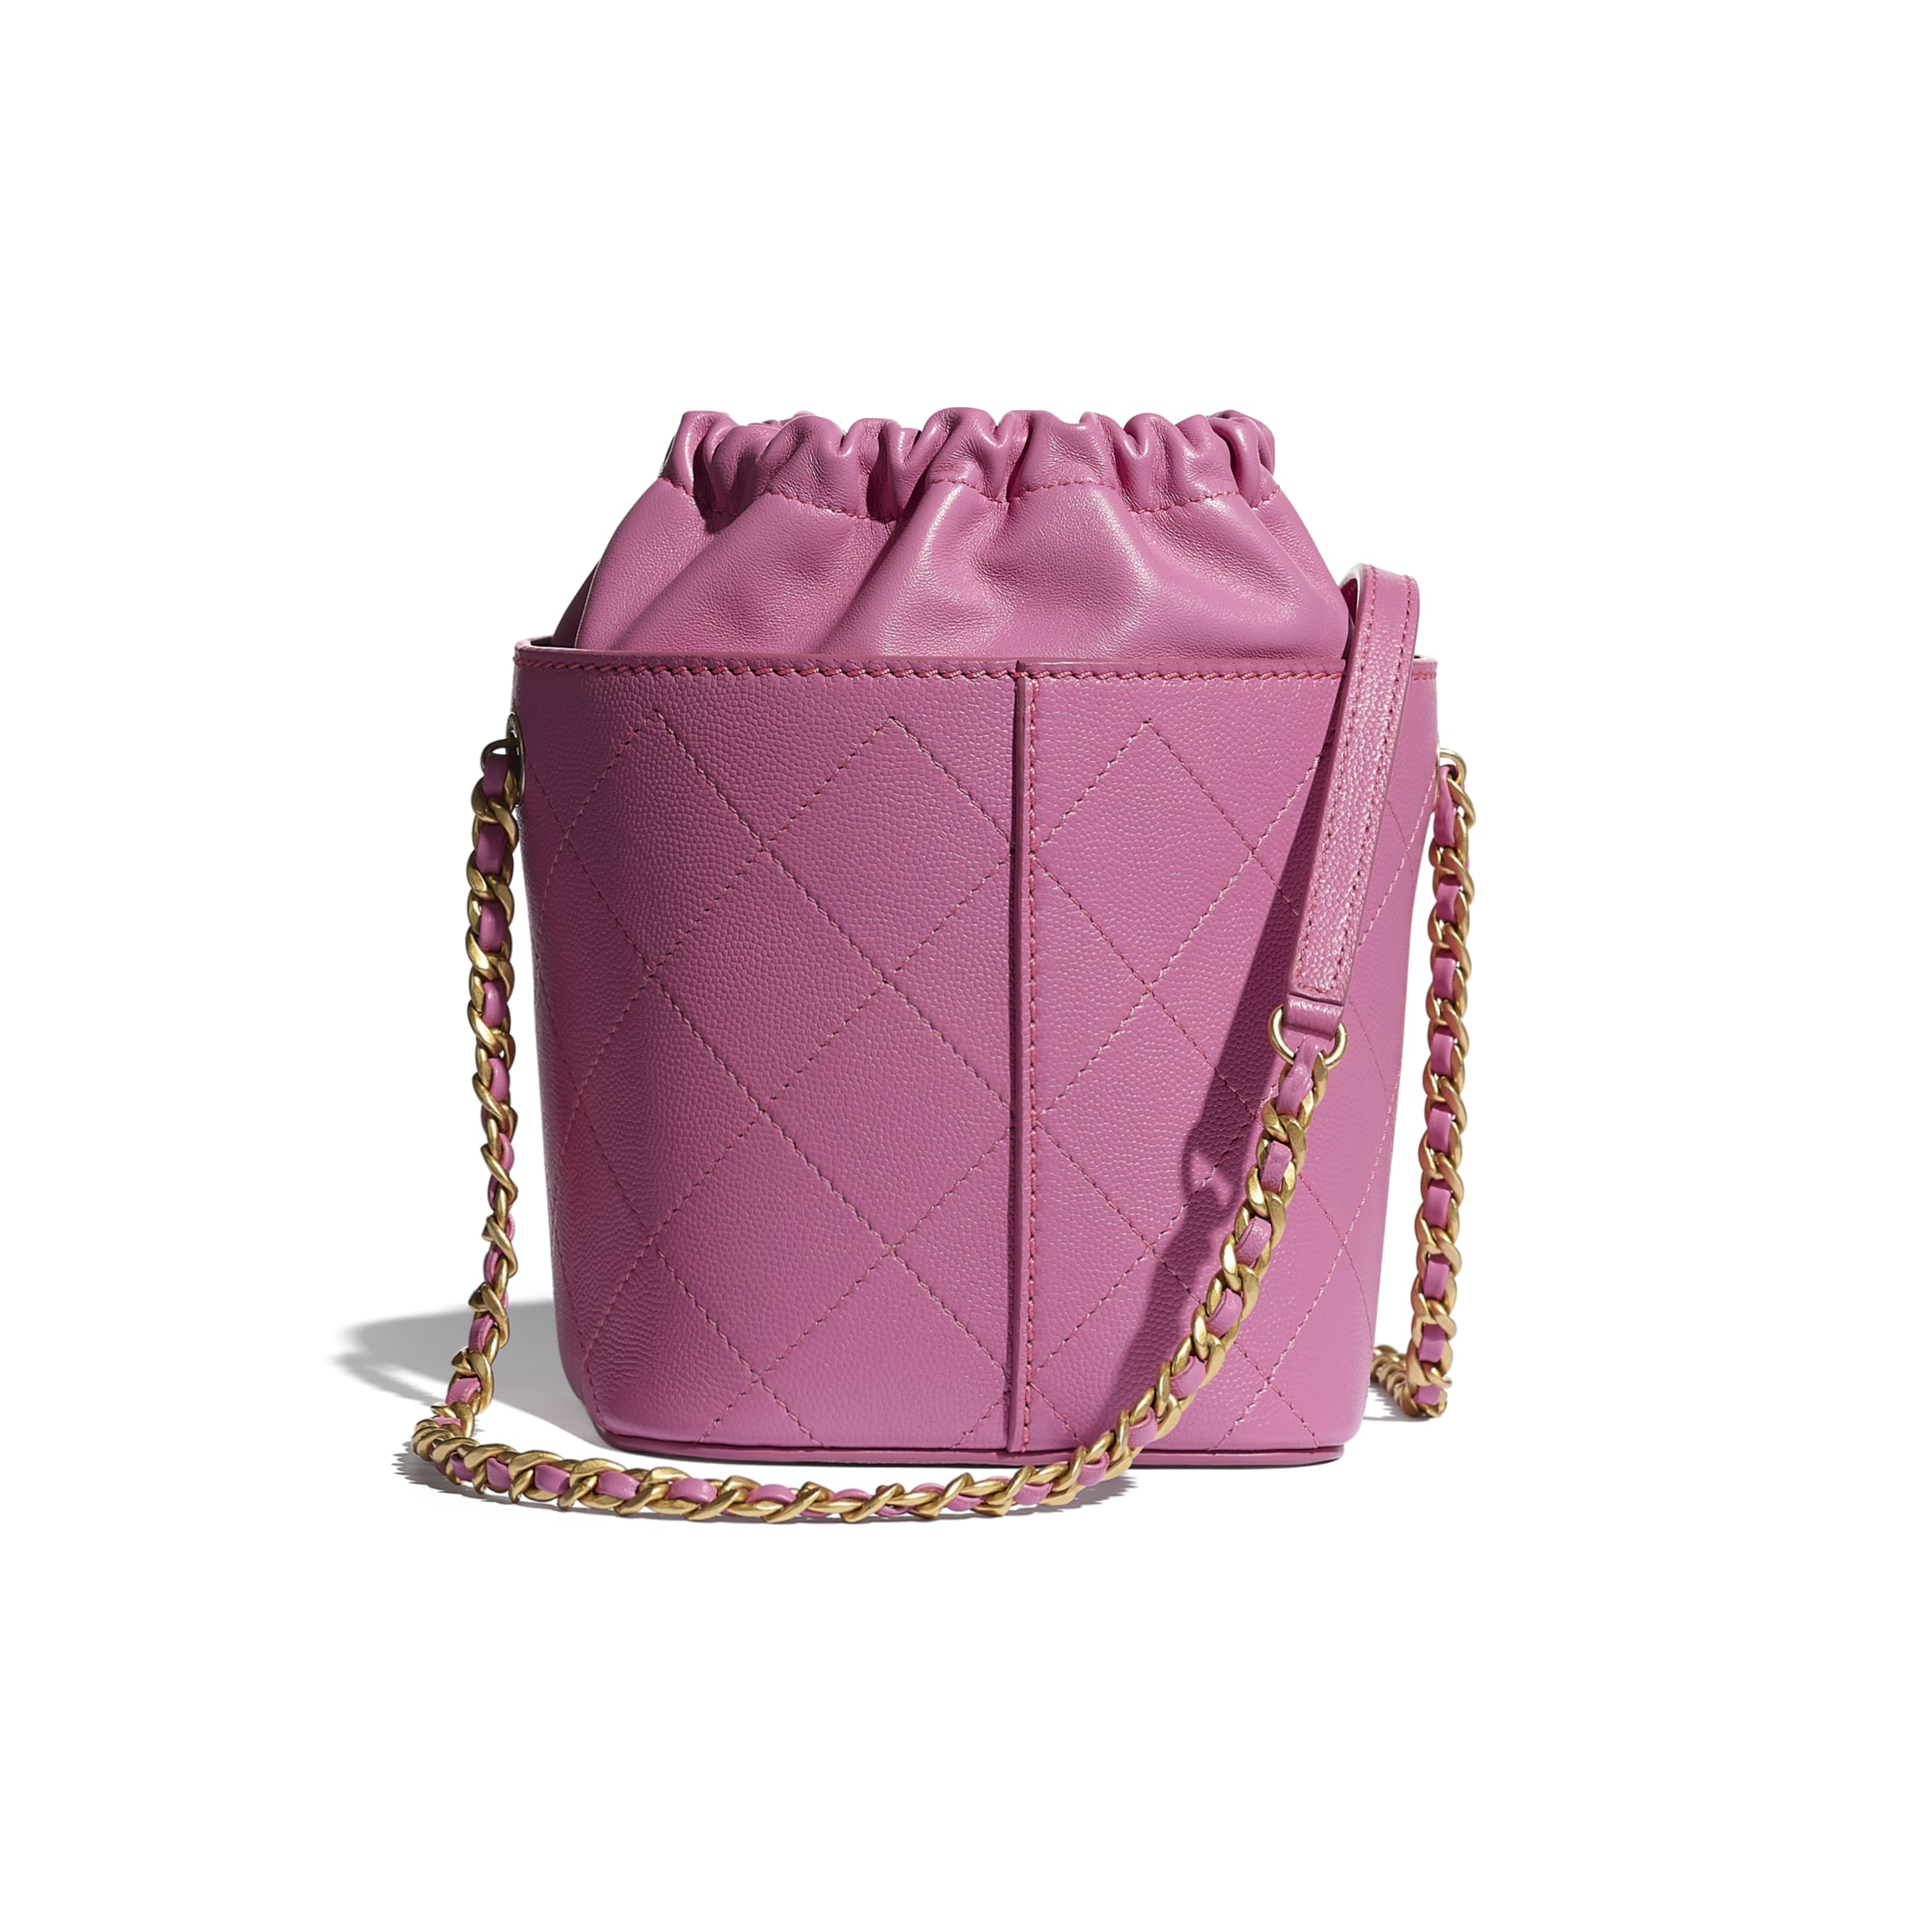 Drawstring Bag - Pink - Grained Lambskin, Smooth Lambskin & Gold-Tone Metal - CHANEL - Alternative view - see standard sized version